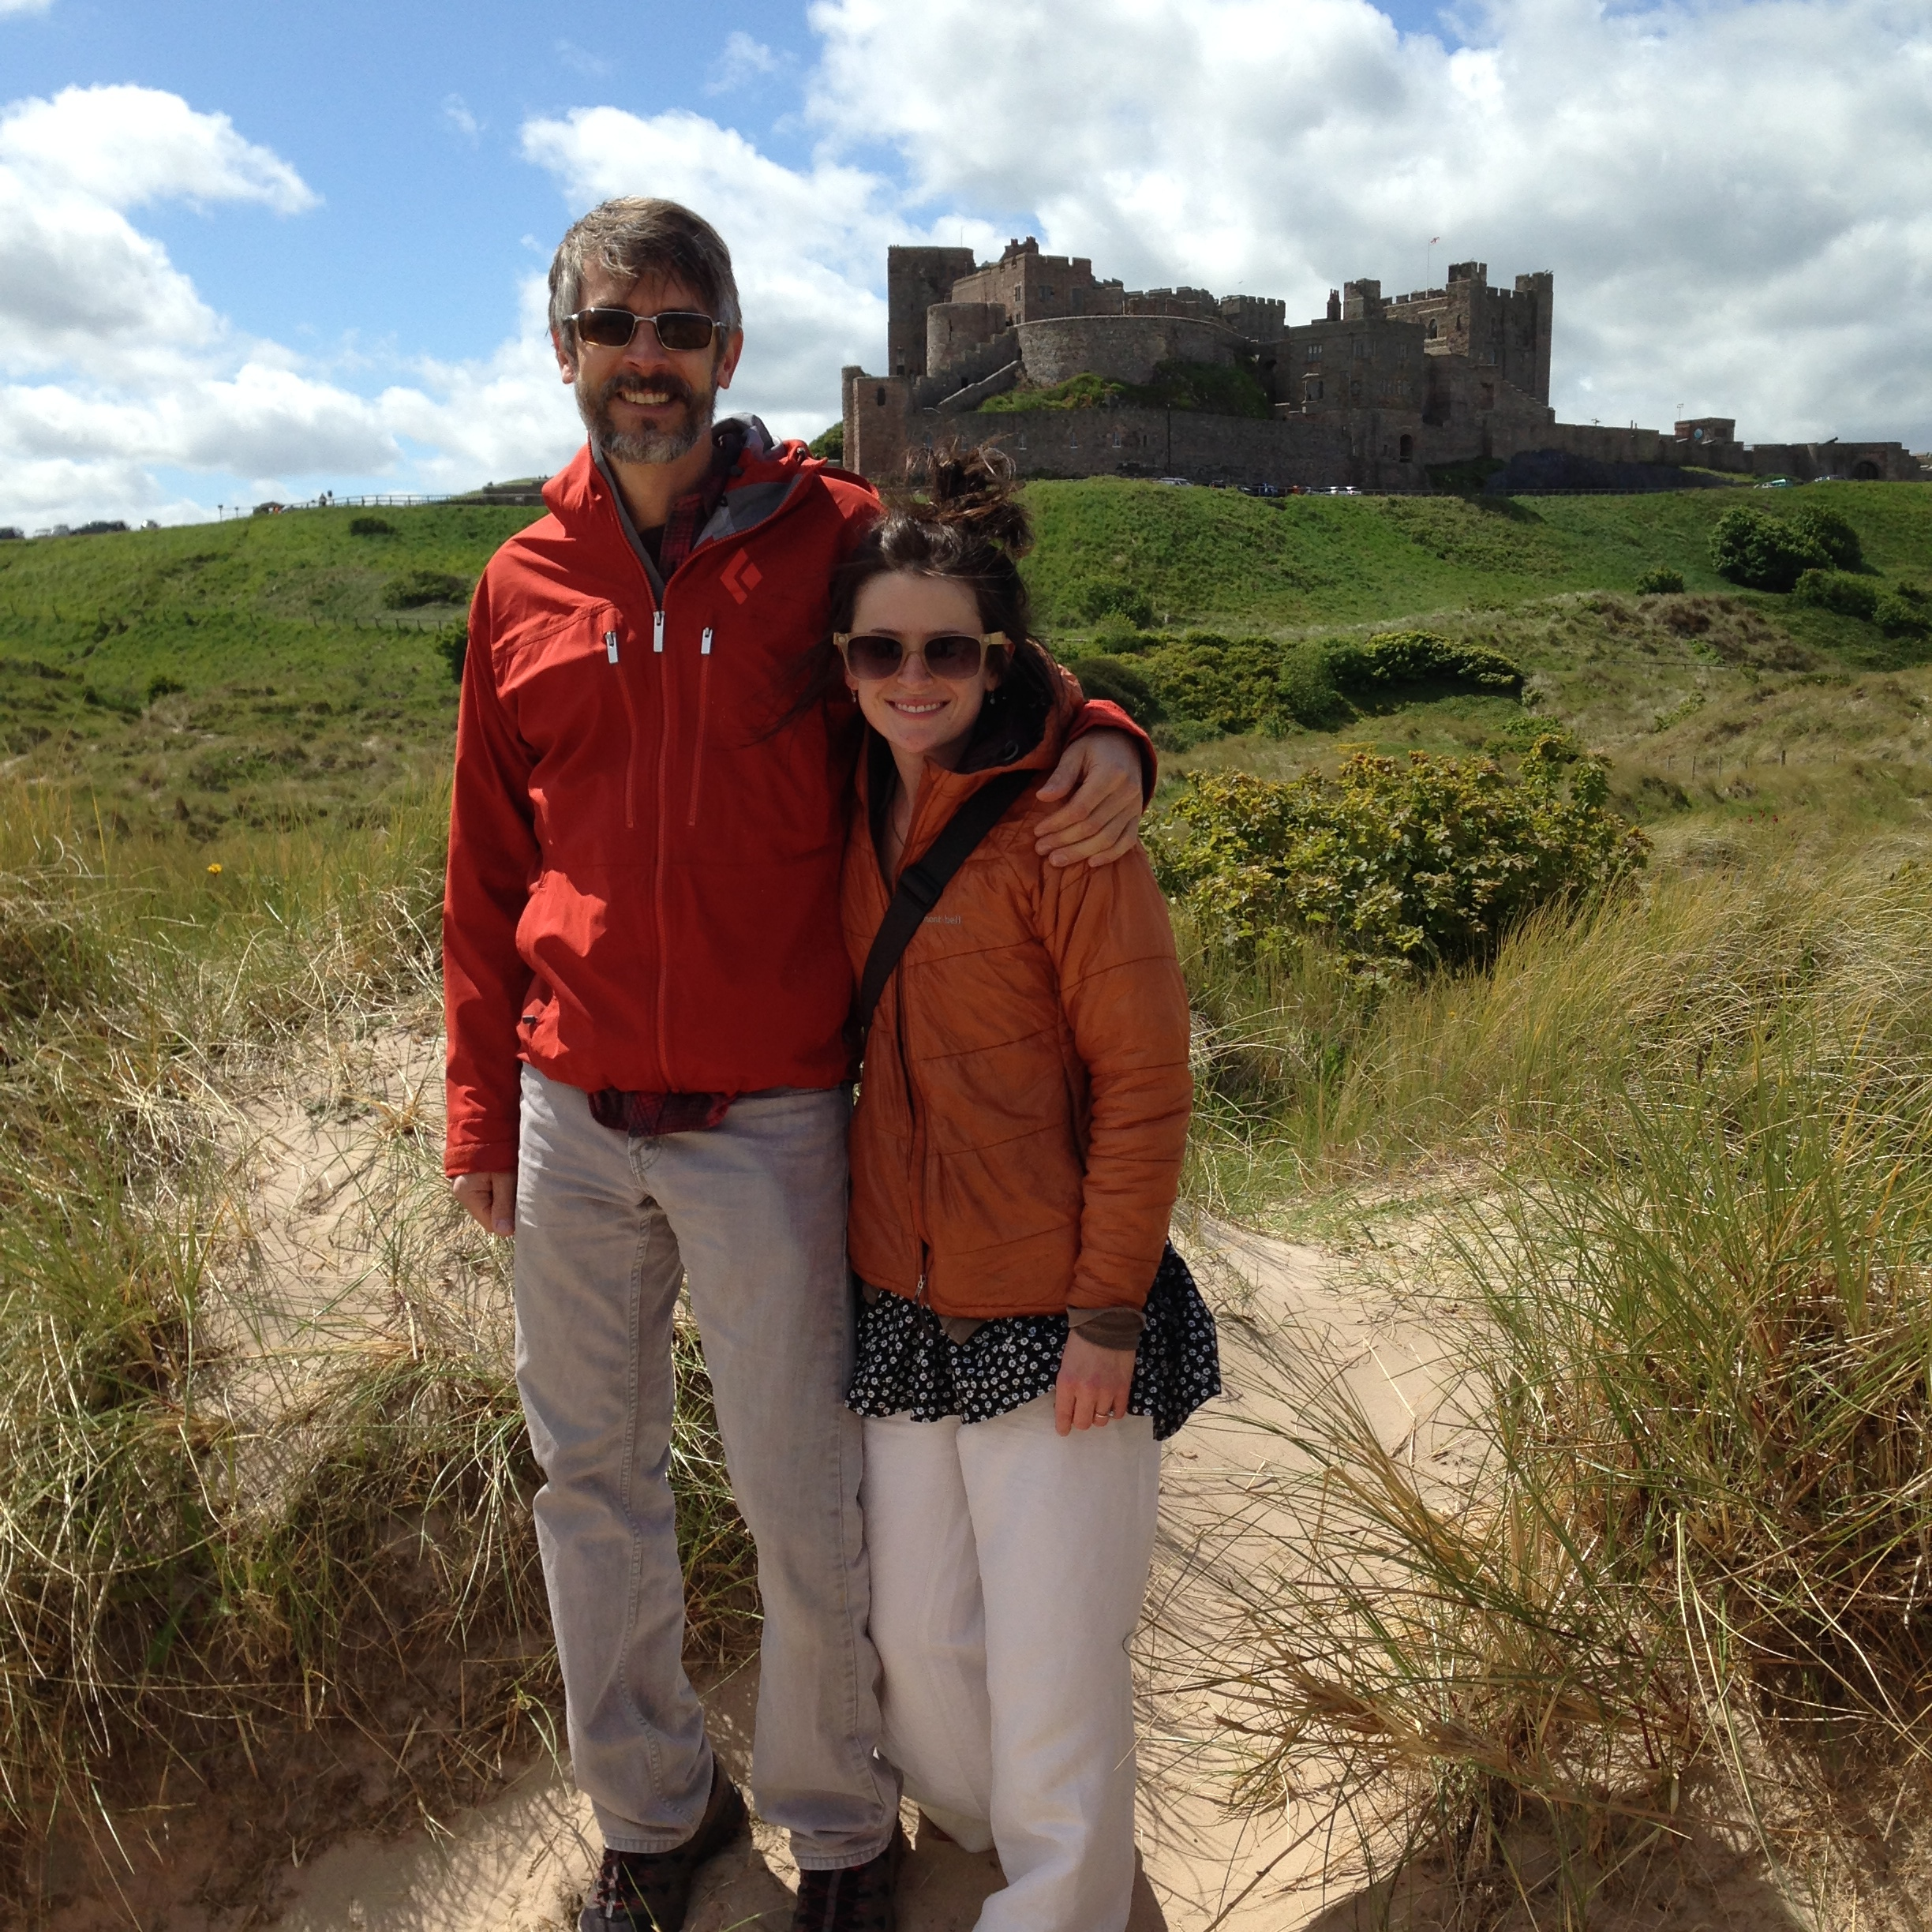 Peter and Lauren at a beachside castle in Northumberland